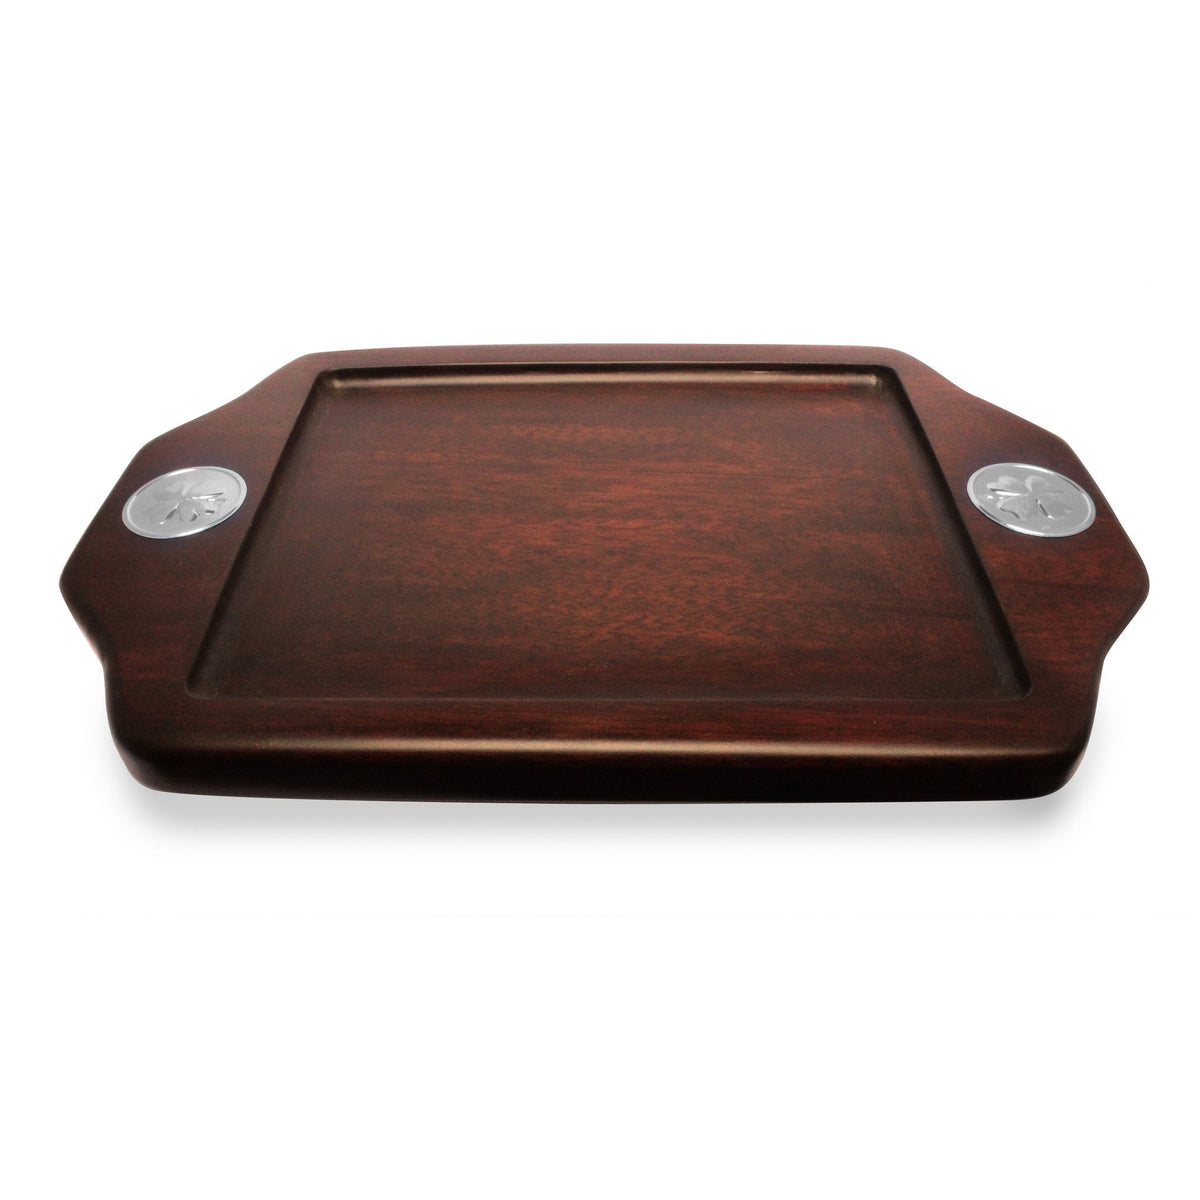 Serving Tray  with Sterling Silver Clover Accent - Qinti - The Peruvian Shop